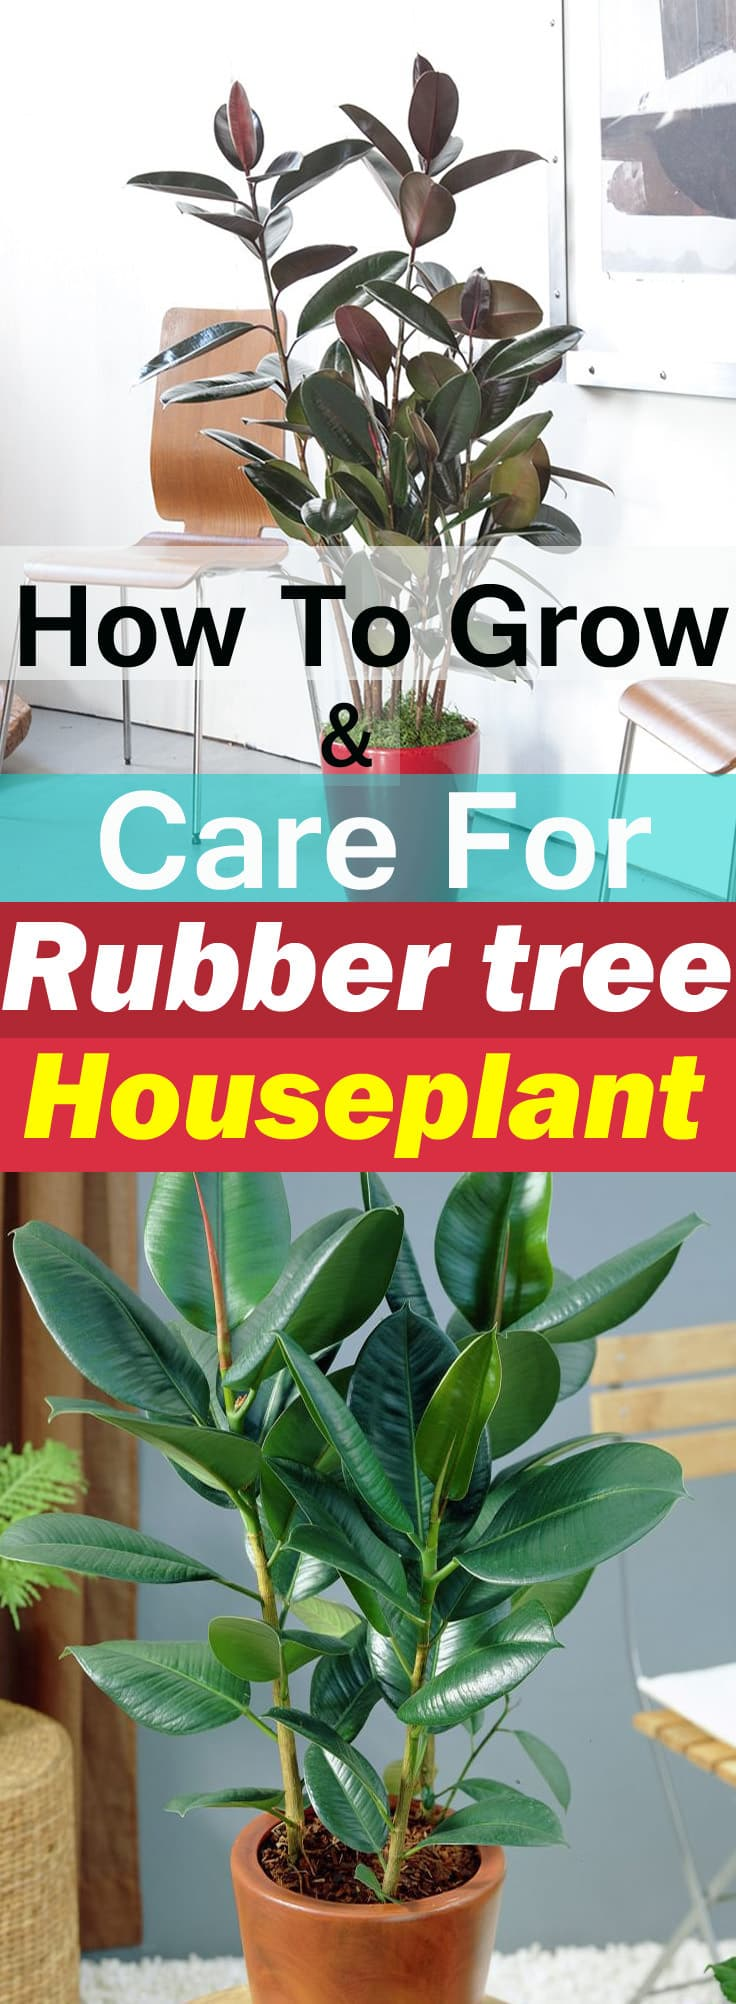 Rubber Plant Care as a houseplant is easy. Besides being an attractive low maintenance plant, it also purifies indoor air!